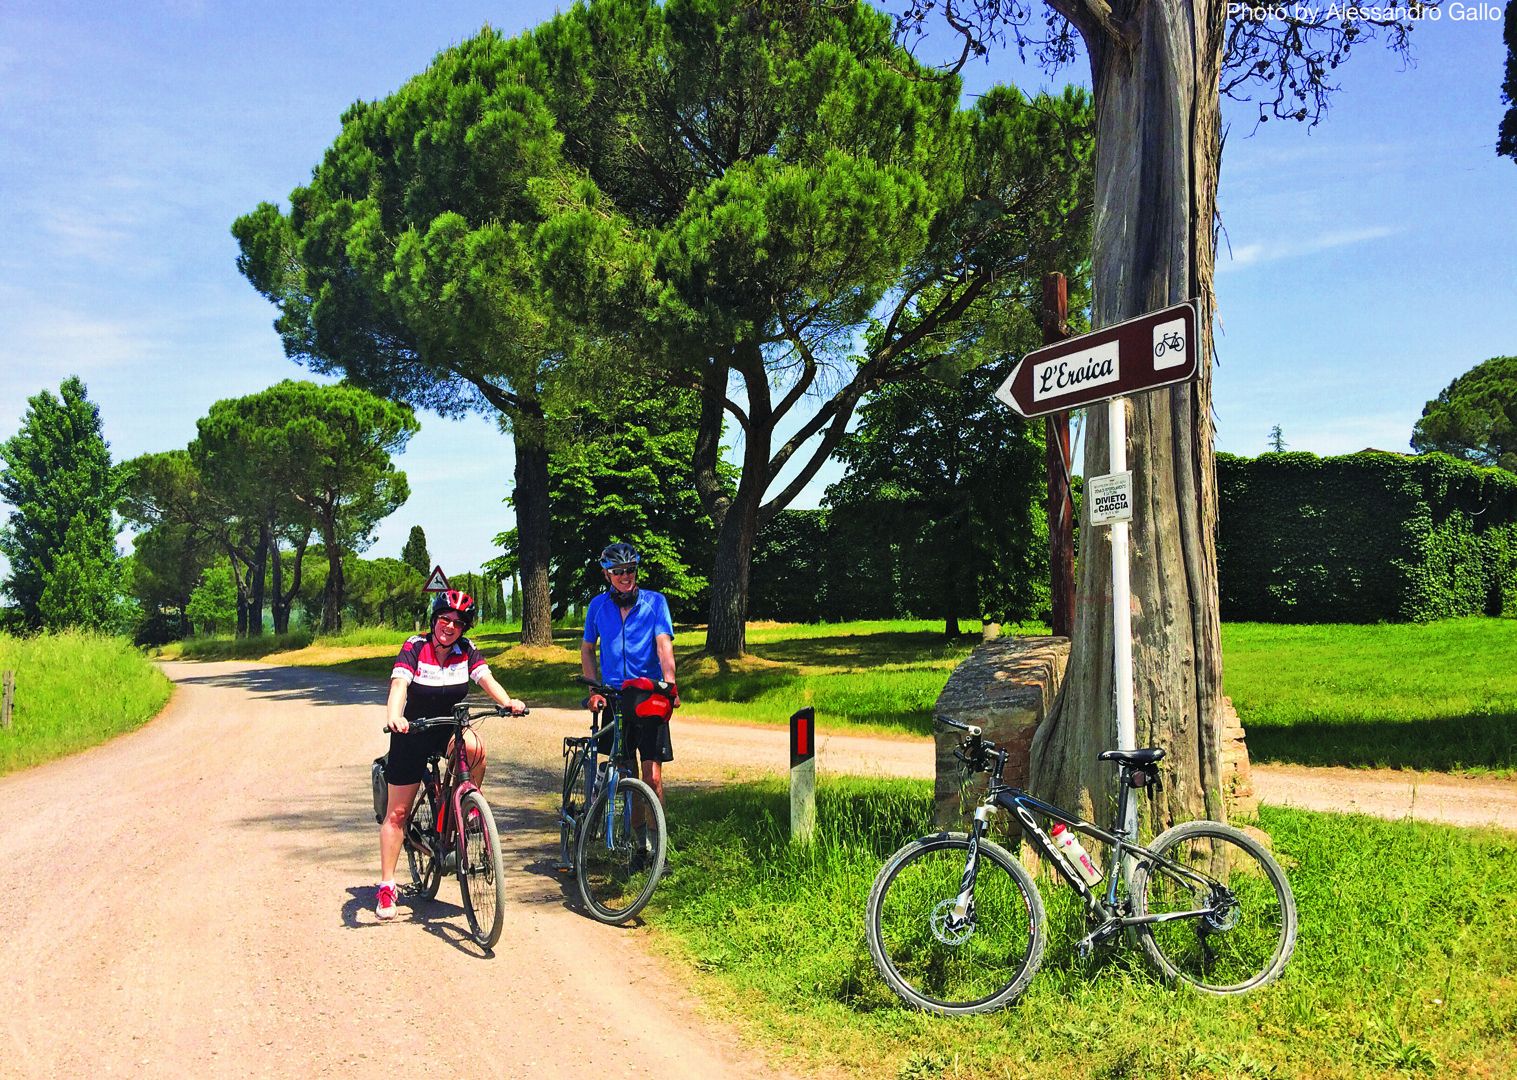 Italy-Via-Francigena-Tuscany-to-Rome-Guided-Leisure-Cycling-Holiday - Italy - Via Francigena (Tuscany to Rome) - Guided Leisure Cycling Holiday - Leisure Cycling